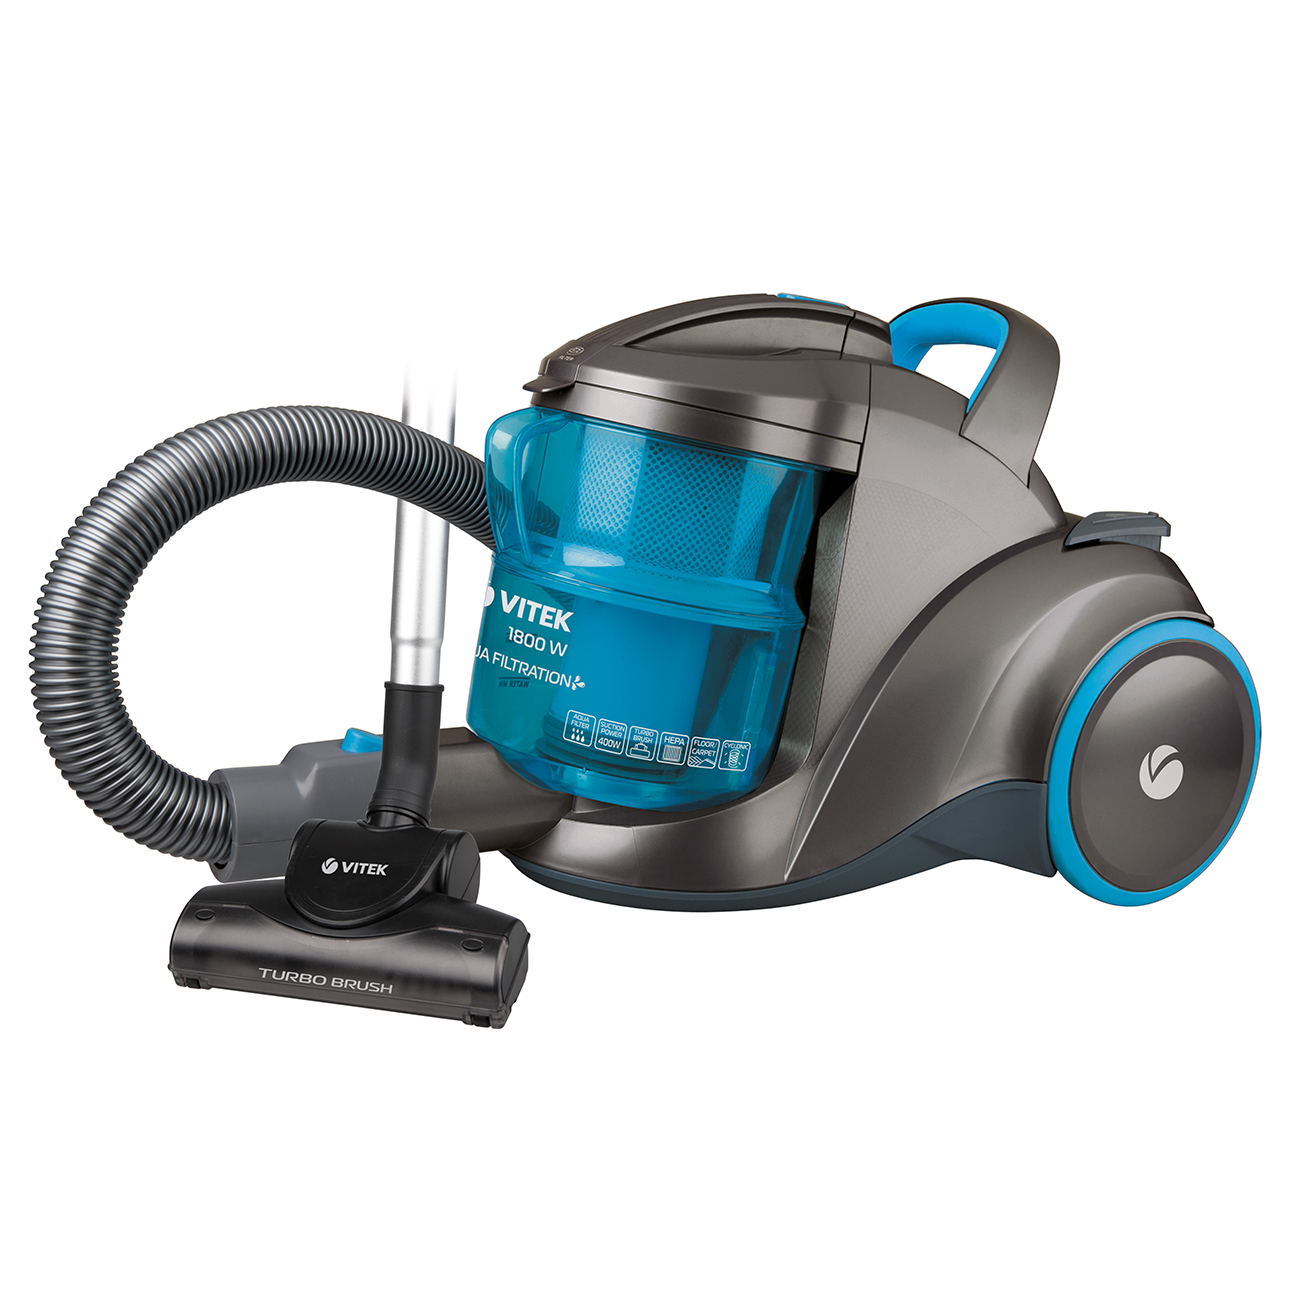 Electric vacuum cleaner Vitek VT-1835 B